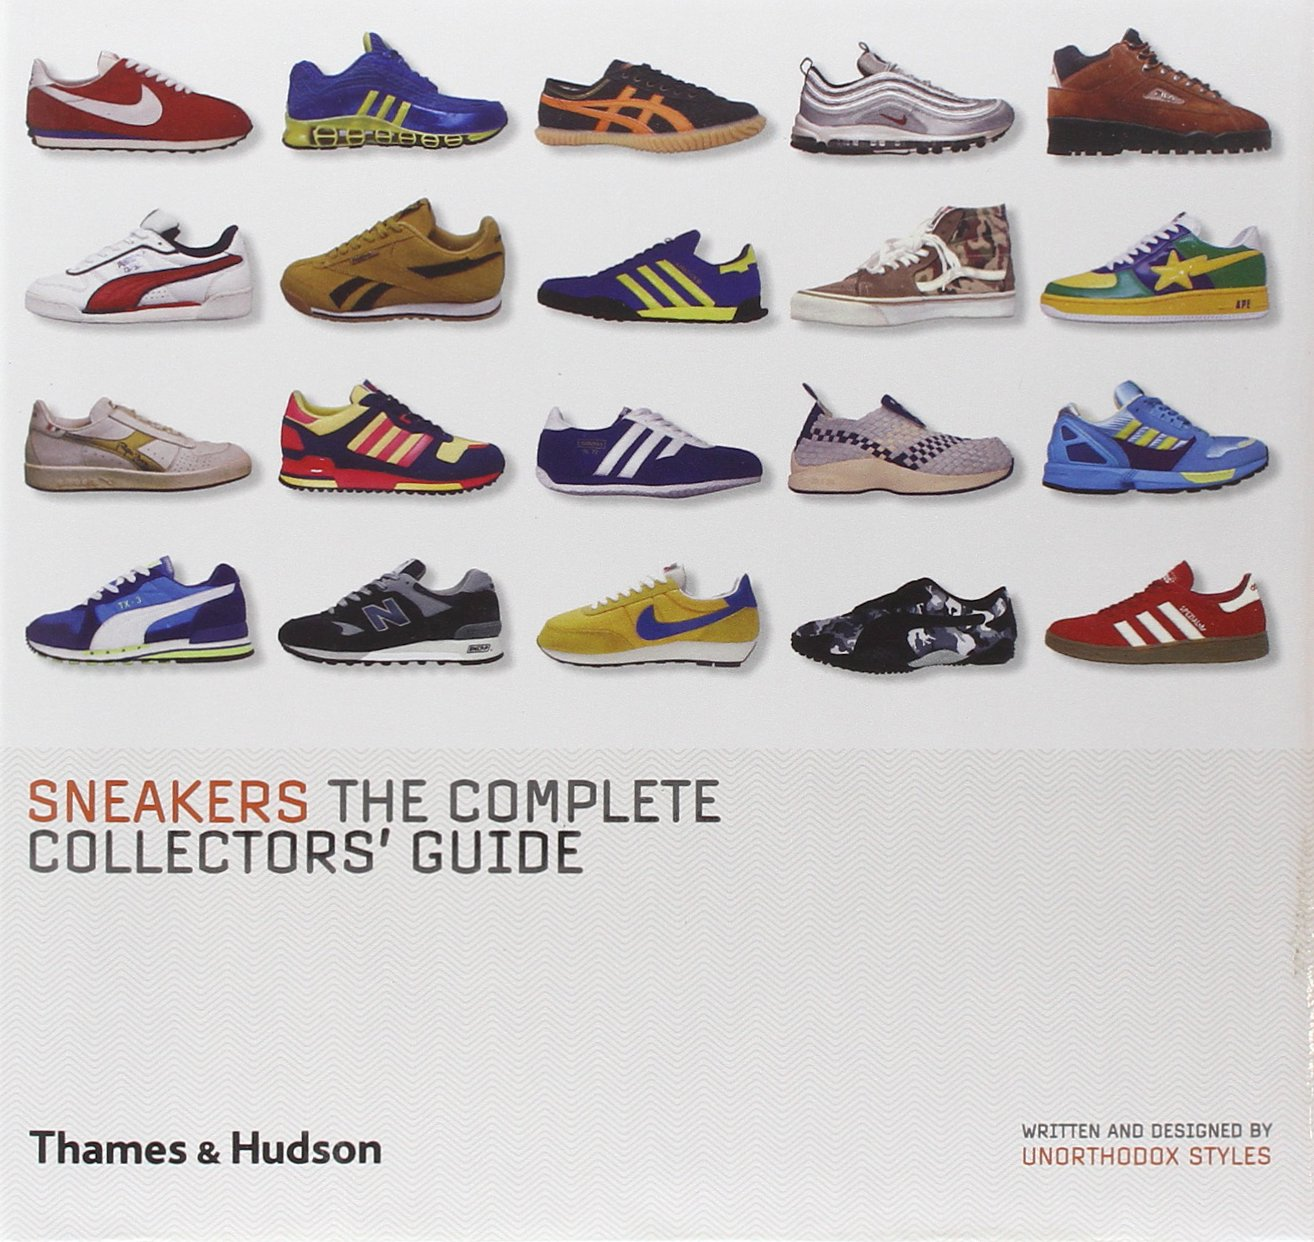 The sneaker coloring book pdf - Sneakers The Complete Collectors Guide Unorthodox Styles 8580001434353 Amazon Com Books